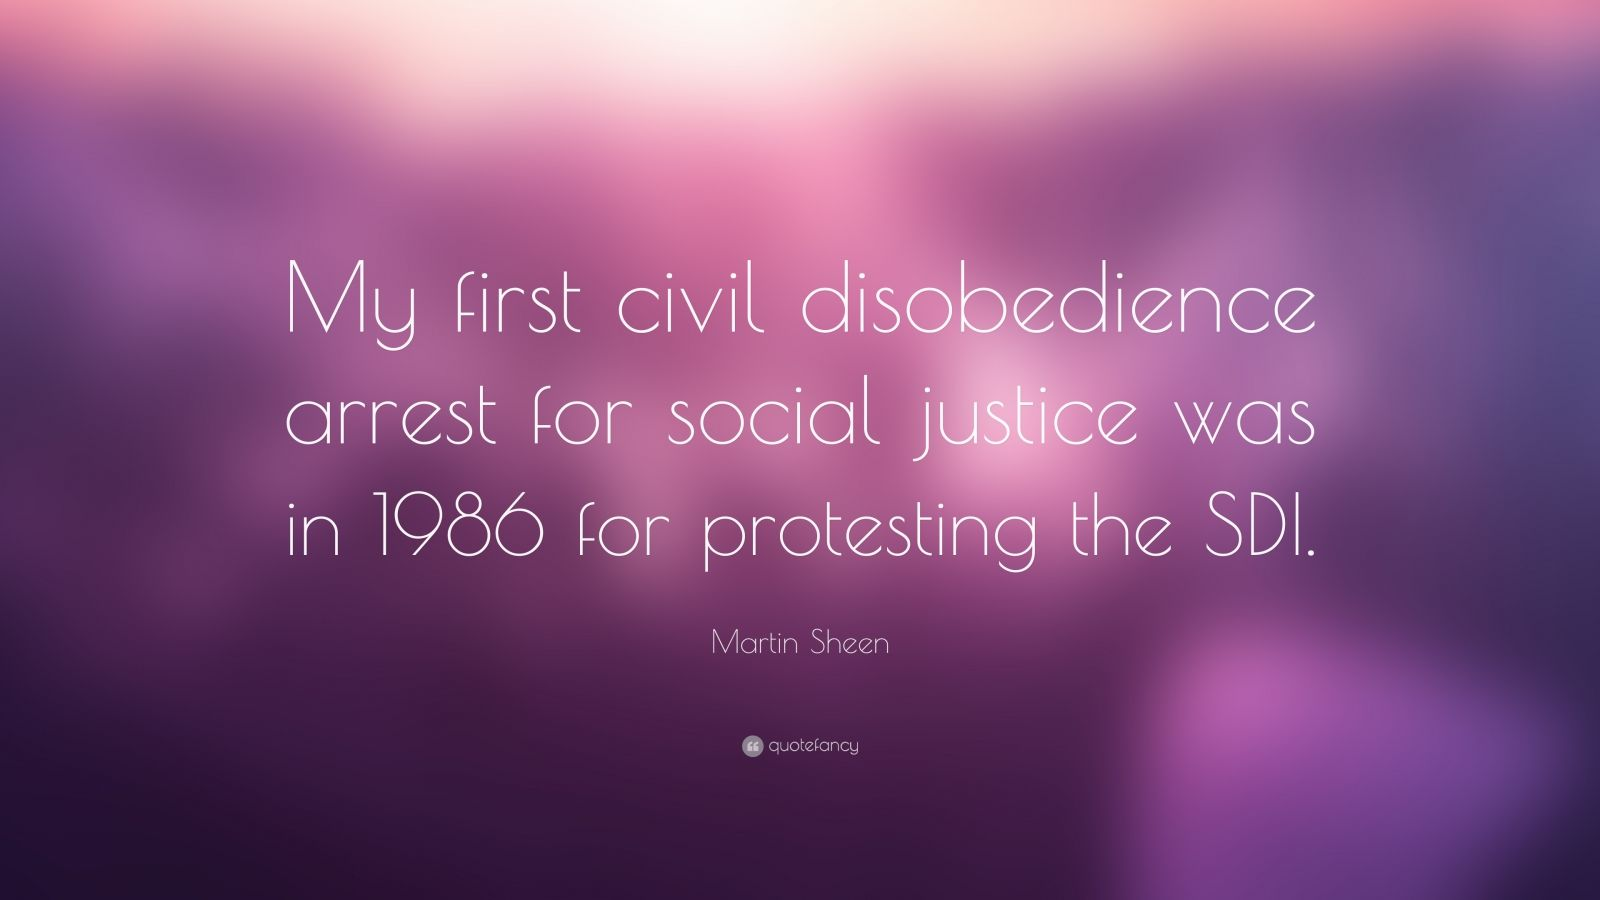 """Martin Sheen Quote: """"My first civil disobedience arrest for social justice was in 1986 for protesting the SDI."""""""